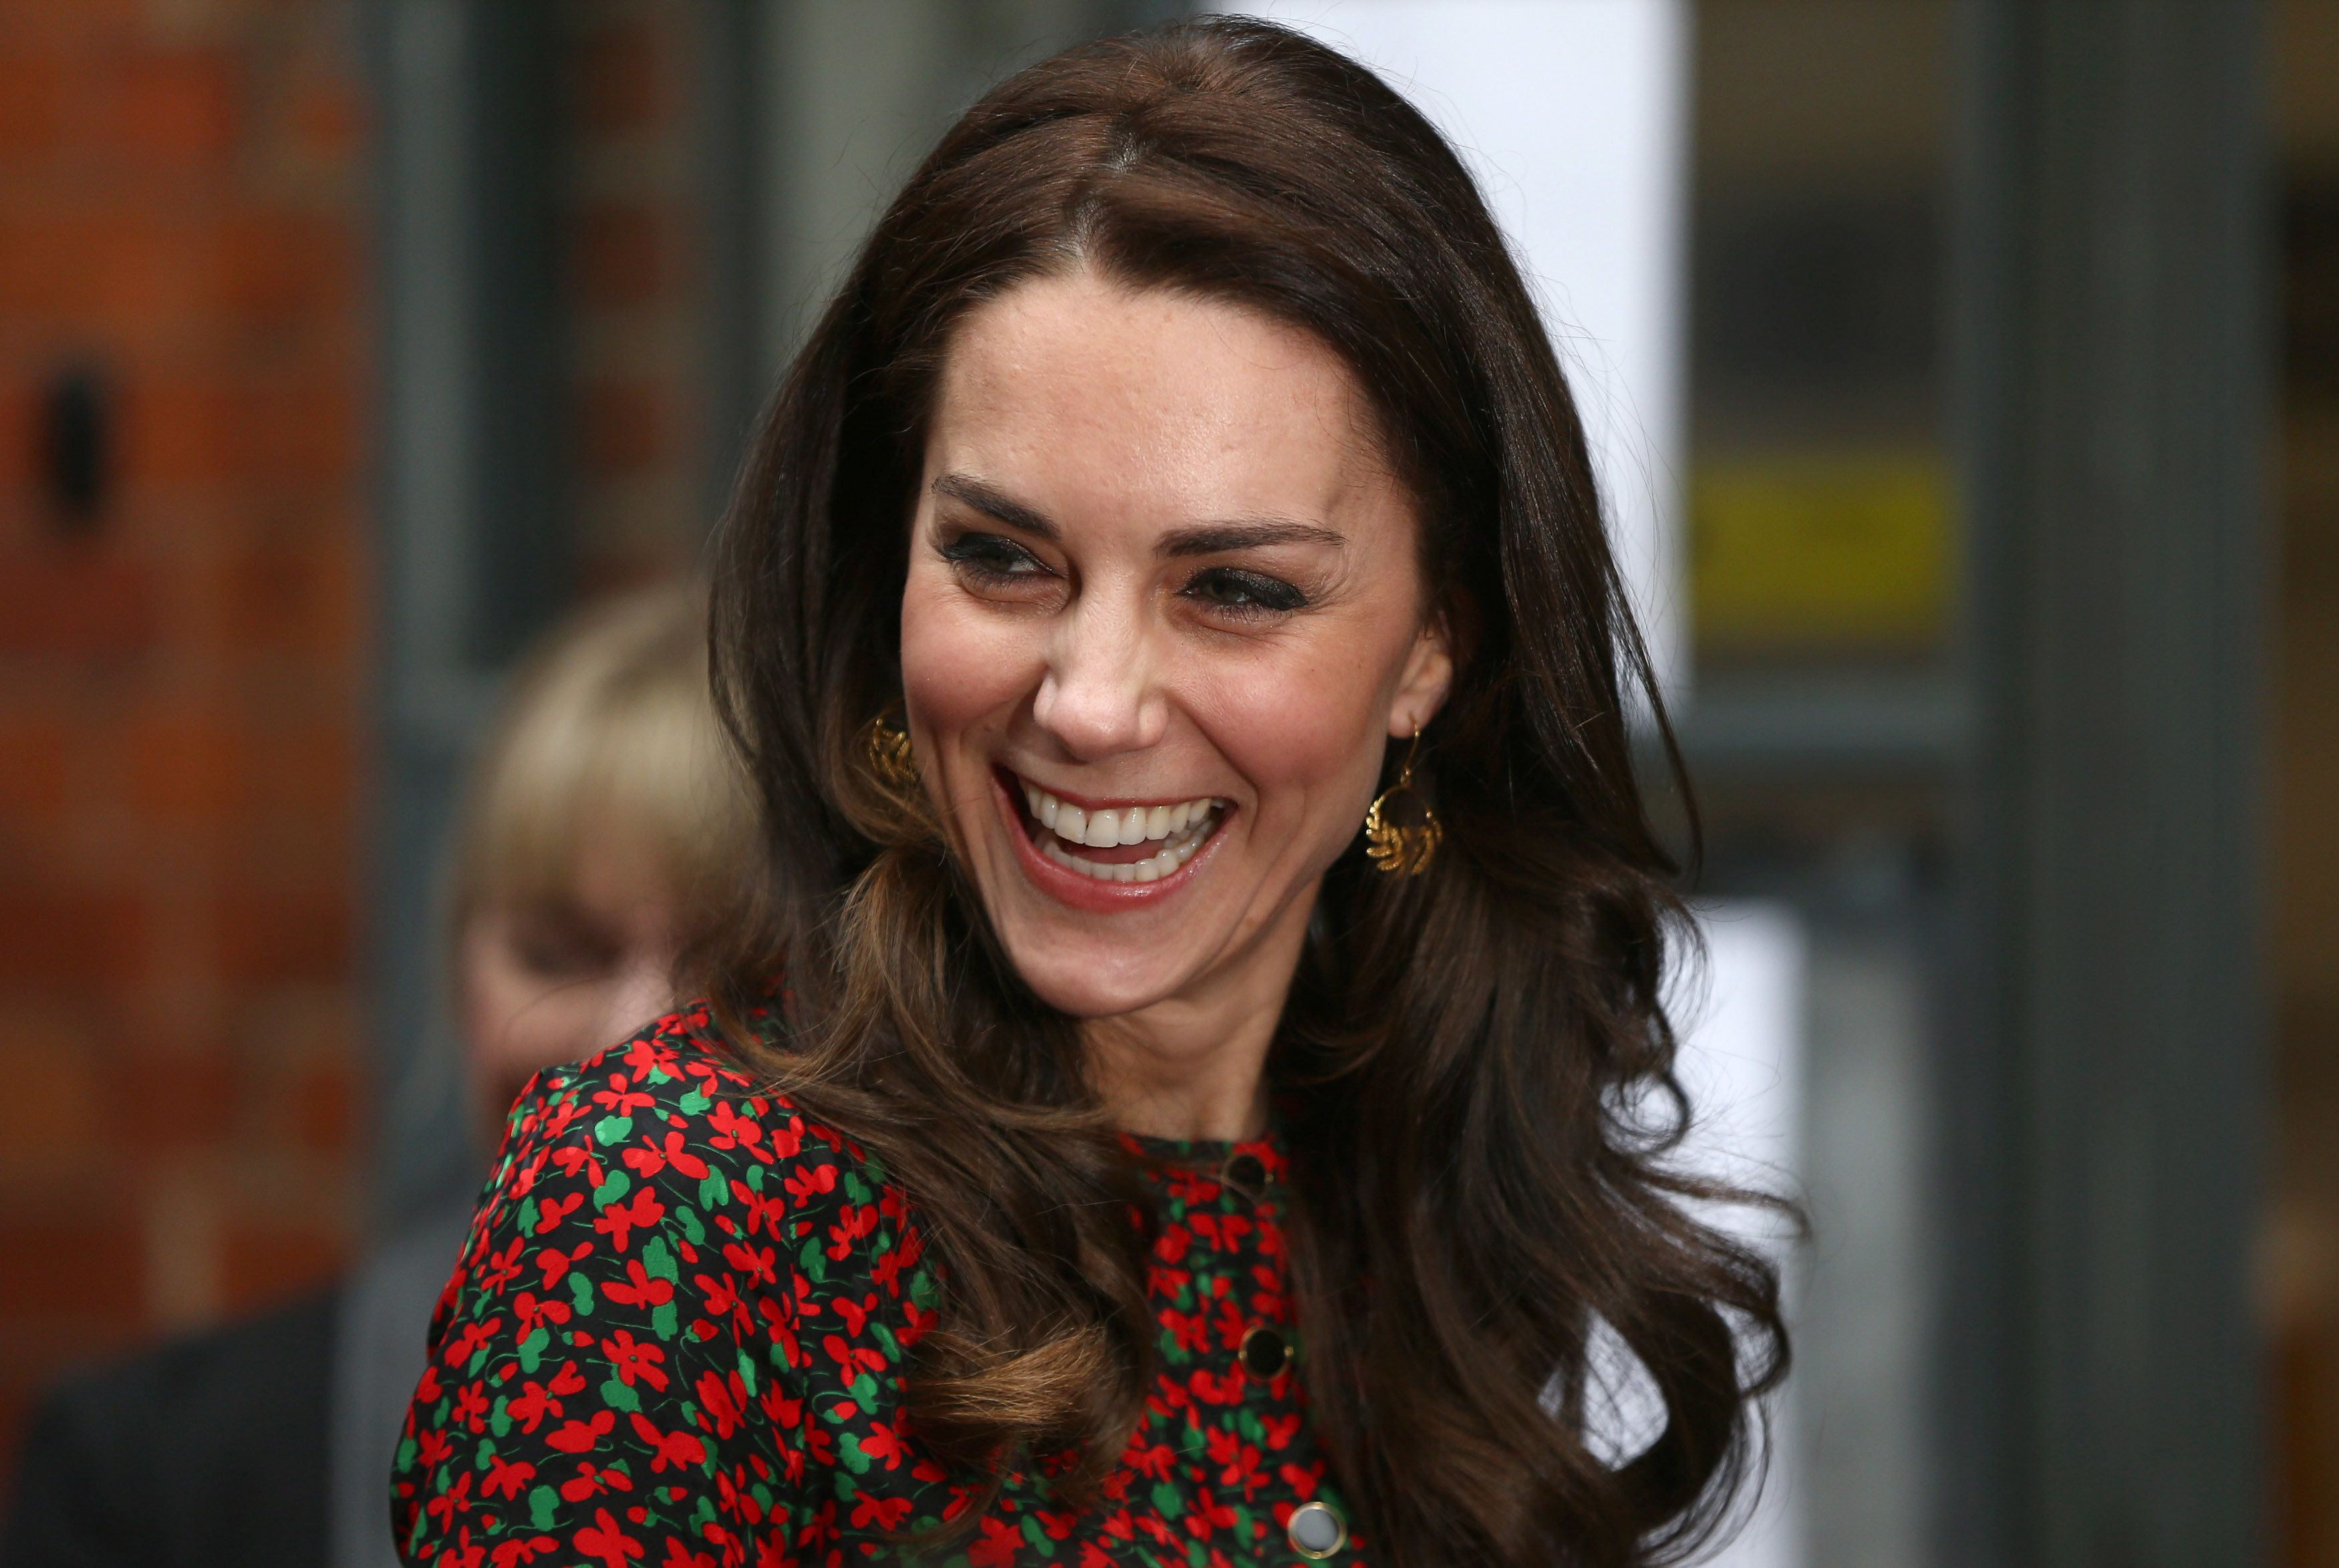 The royal formerly known as Kate Middleton needs a new right-hand aide.